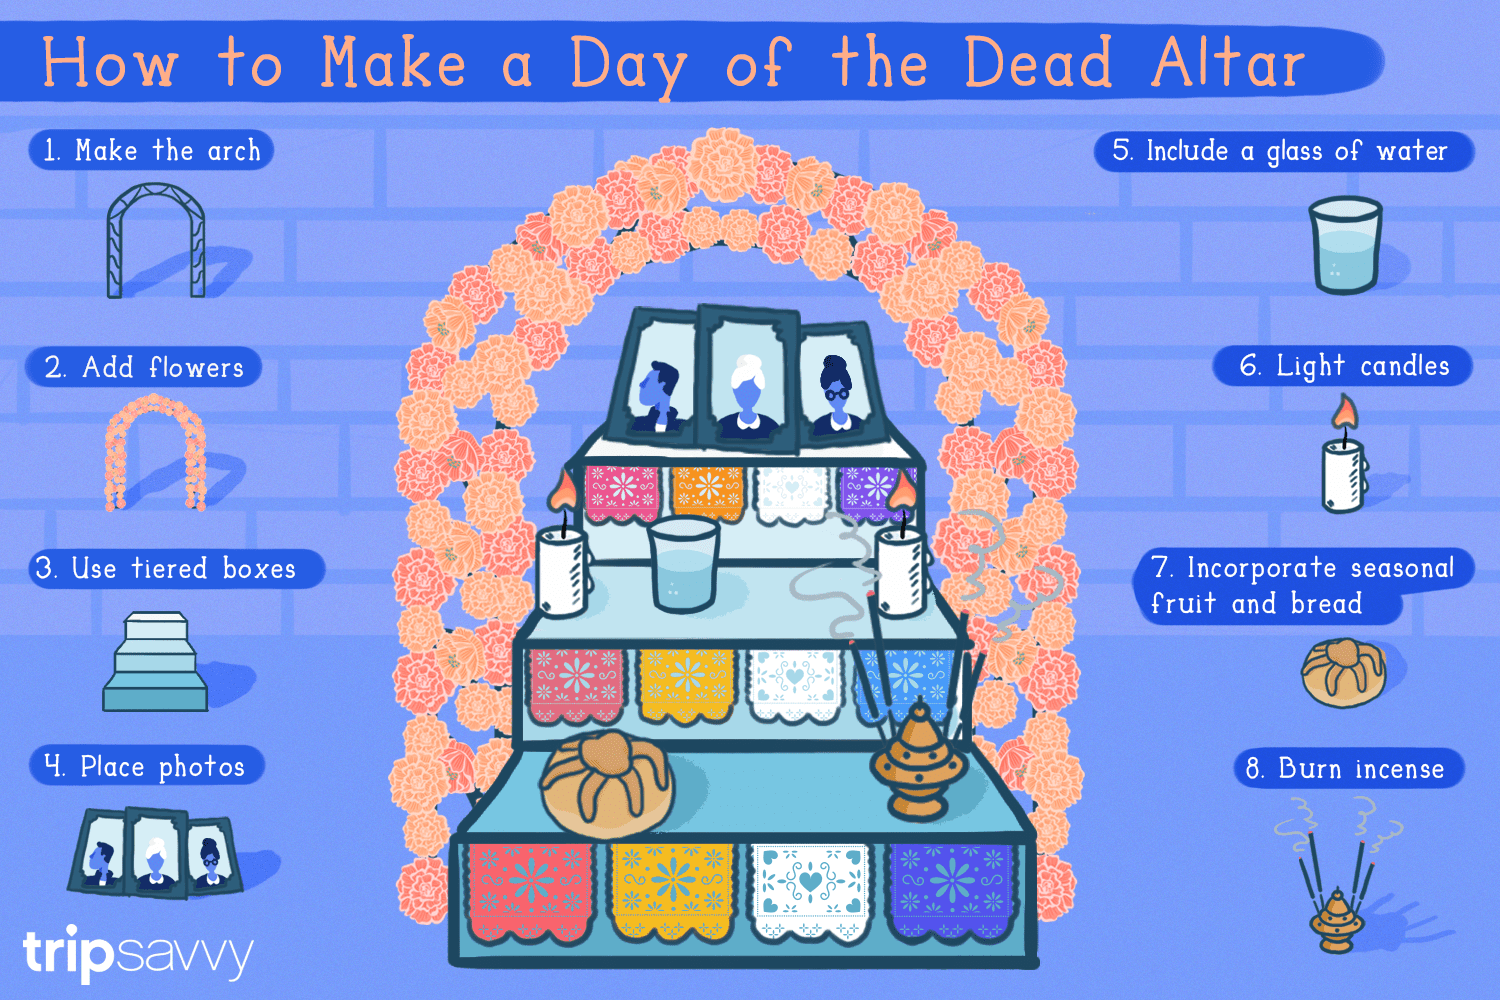 How To Make A Day Of The Dead Altar